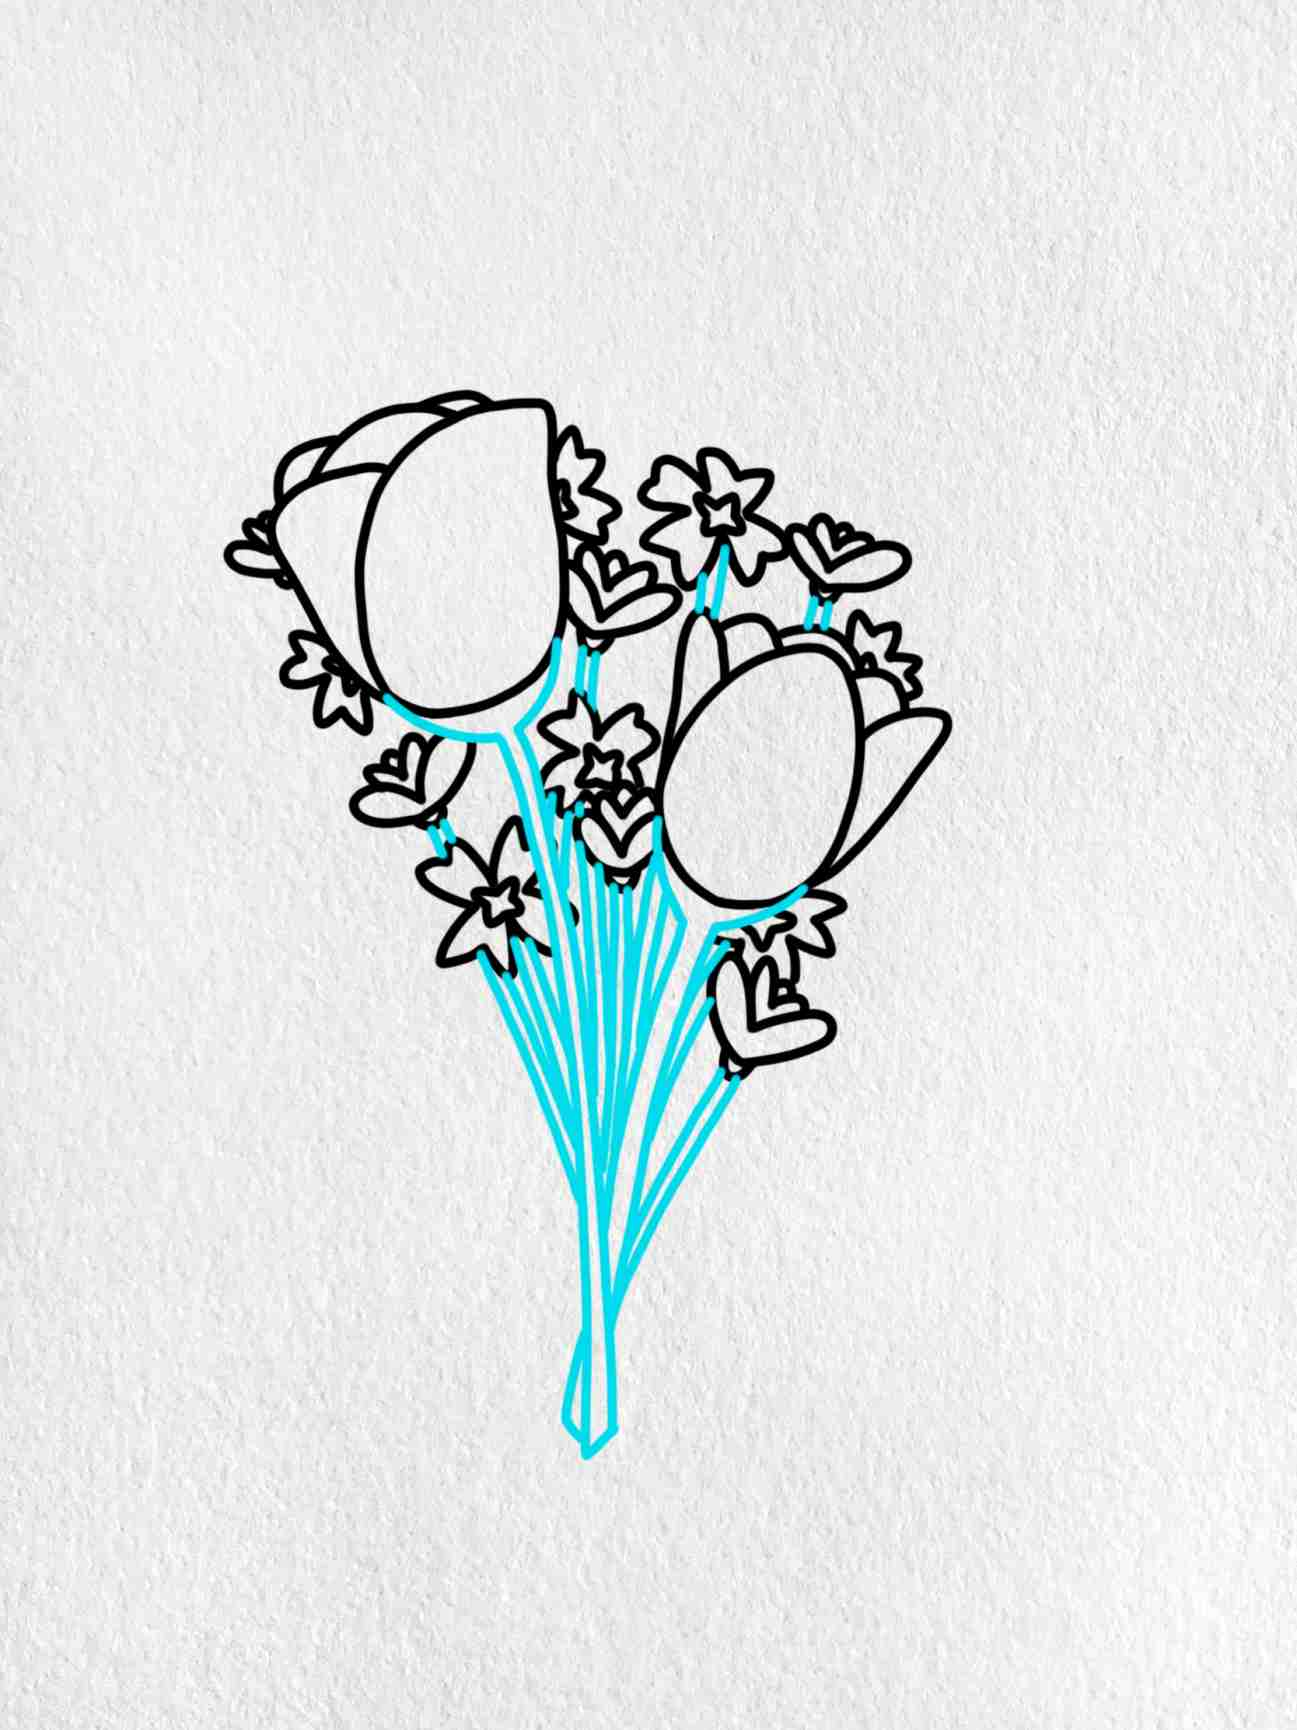 Easy To Draw Flowers: Step 4